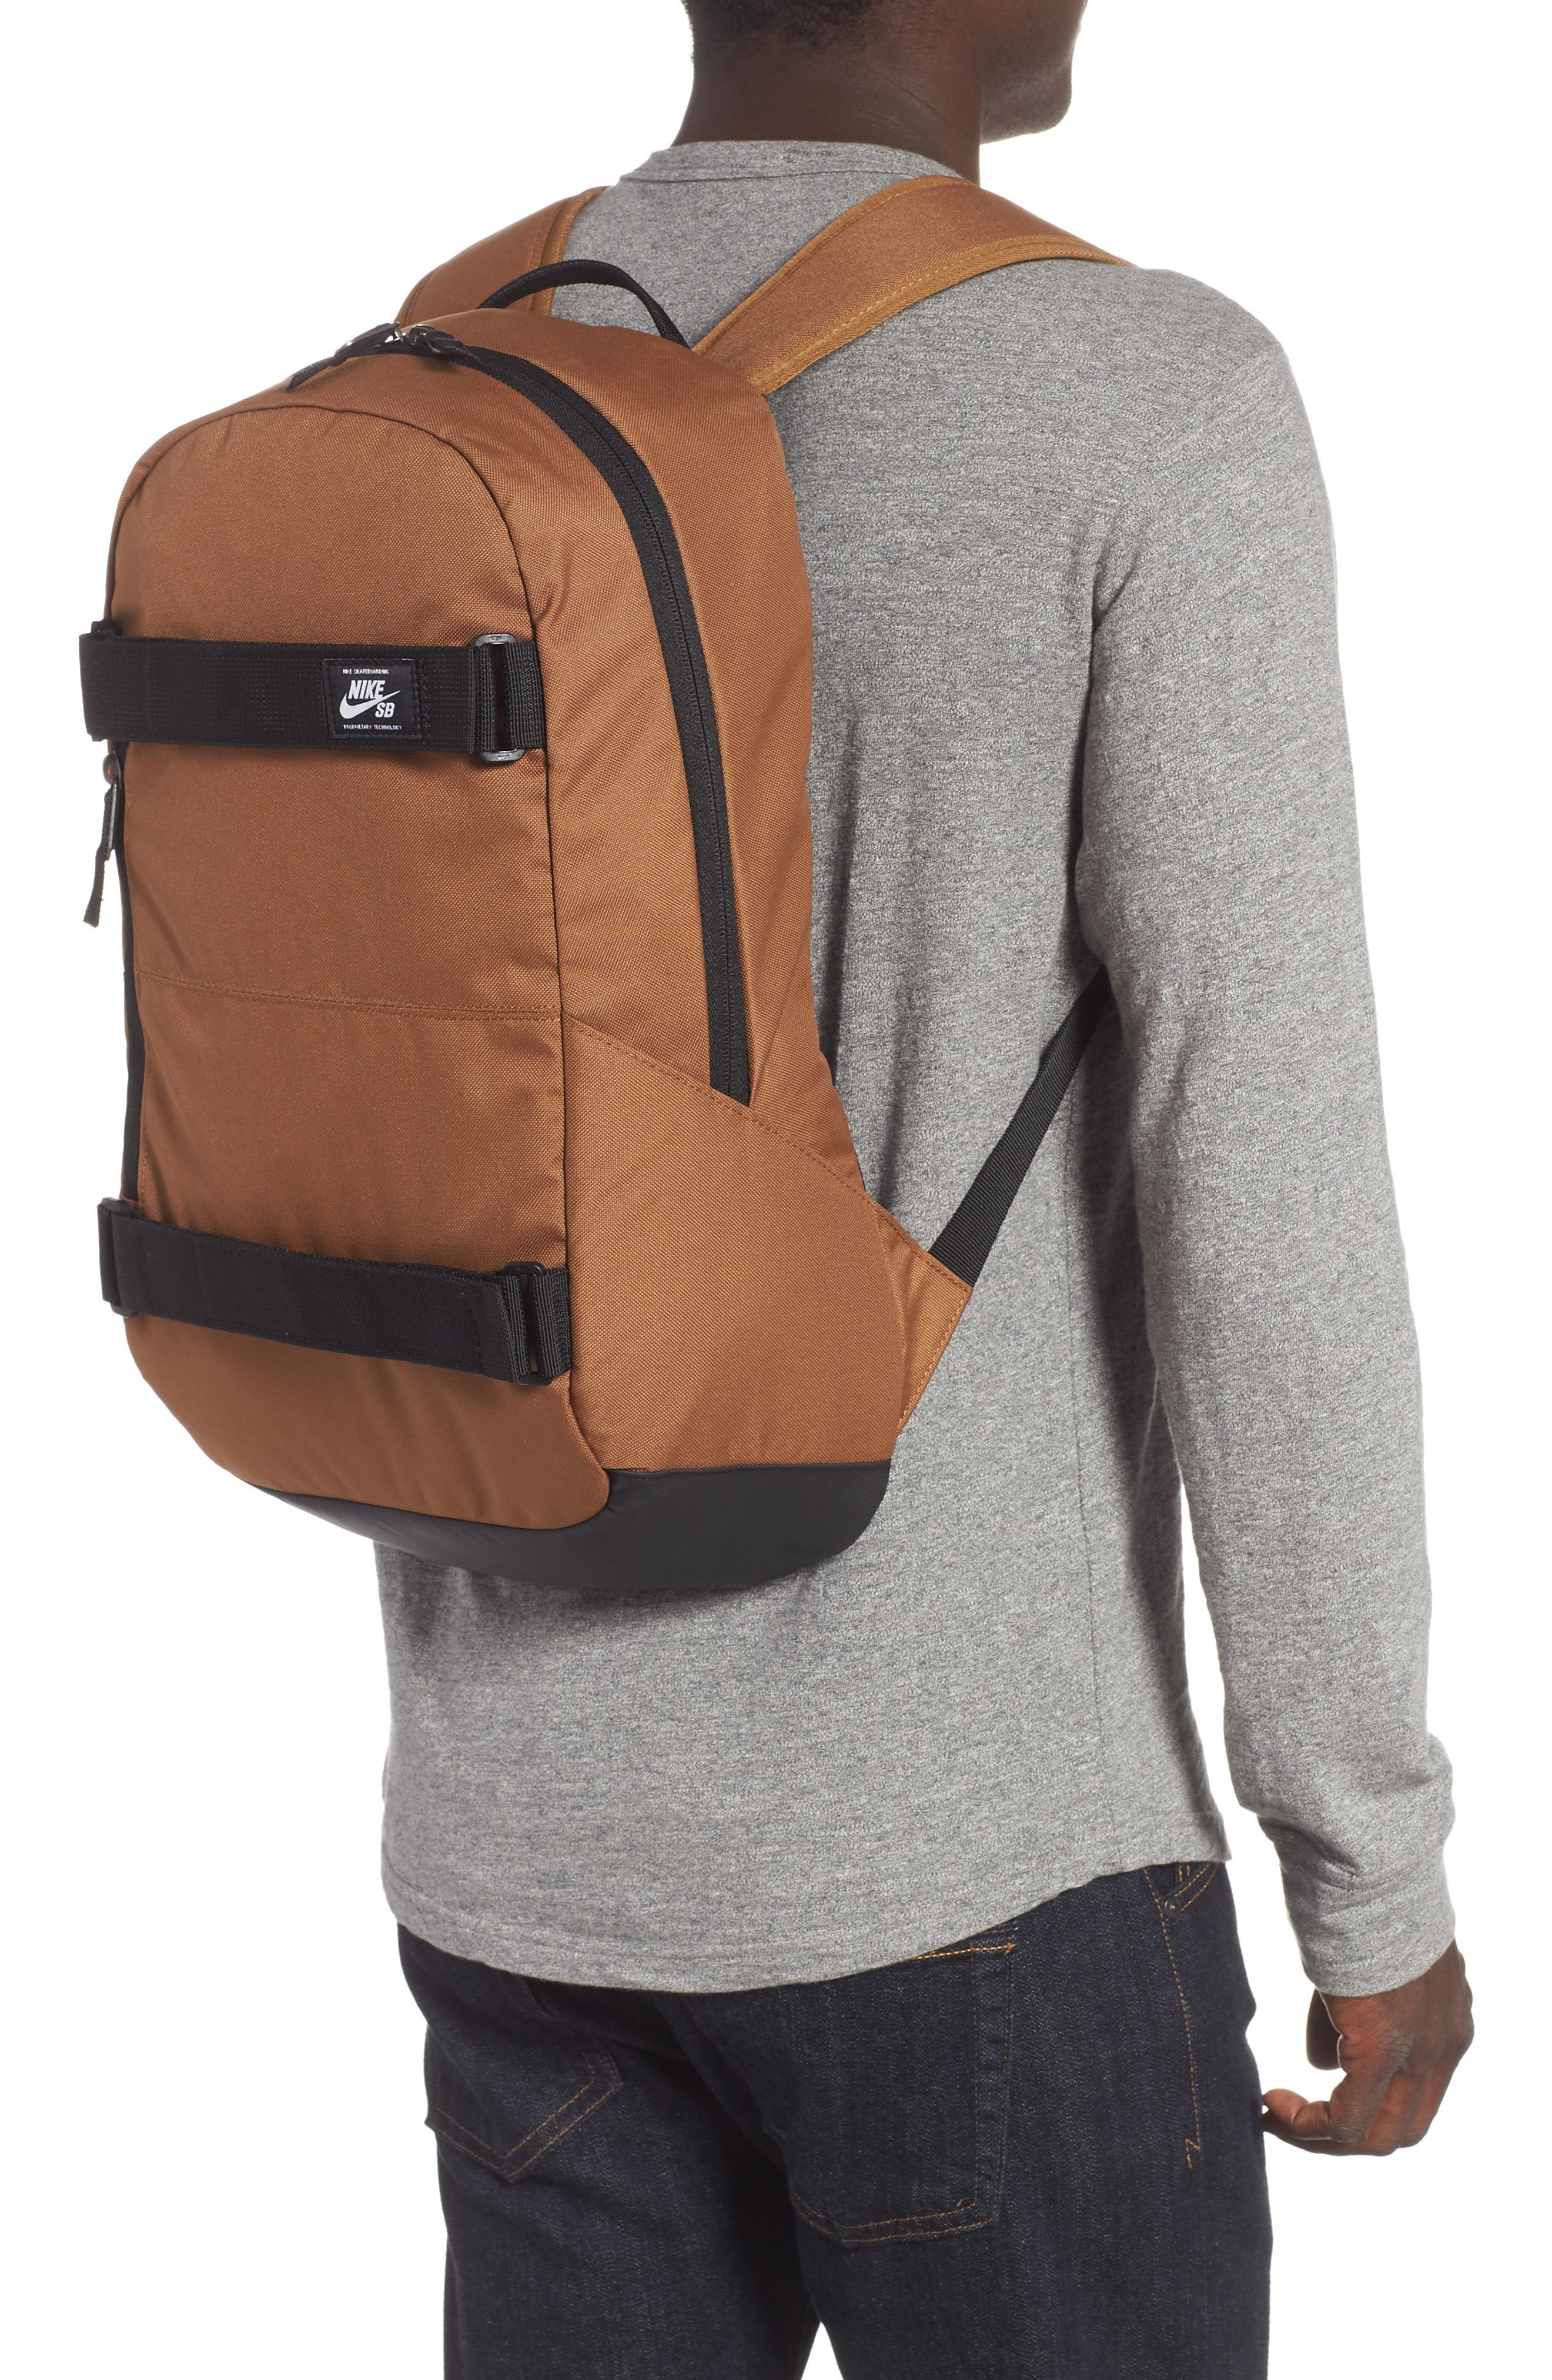 Courthouse Backpack,                             Alternate thumbnail 2, color,                             ALE BROWN